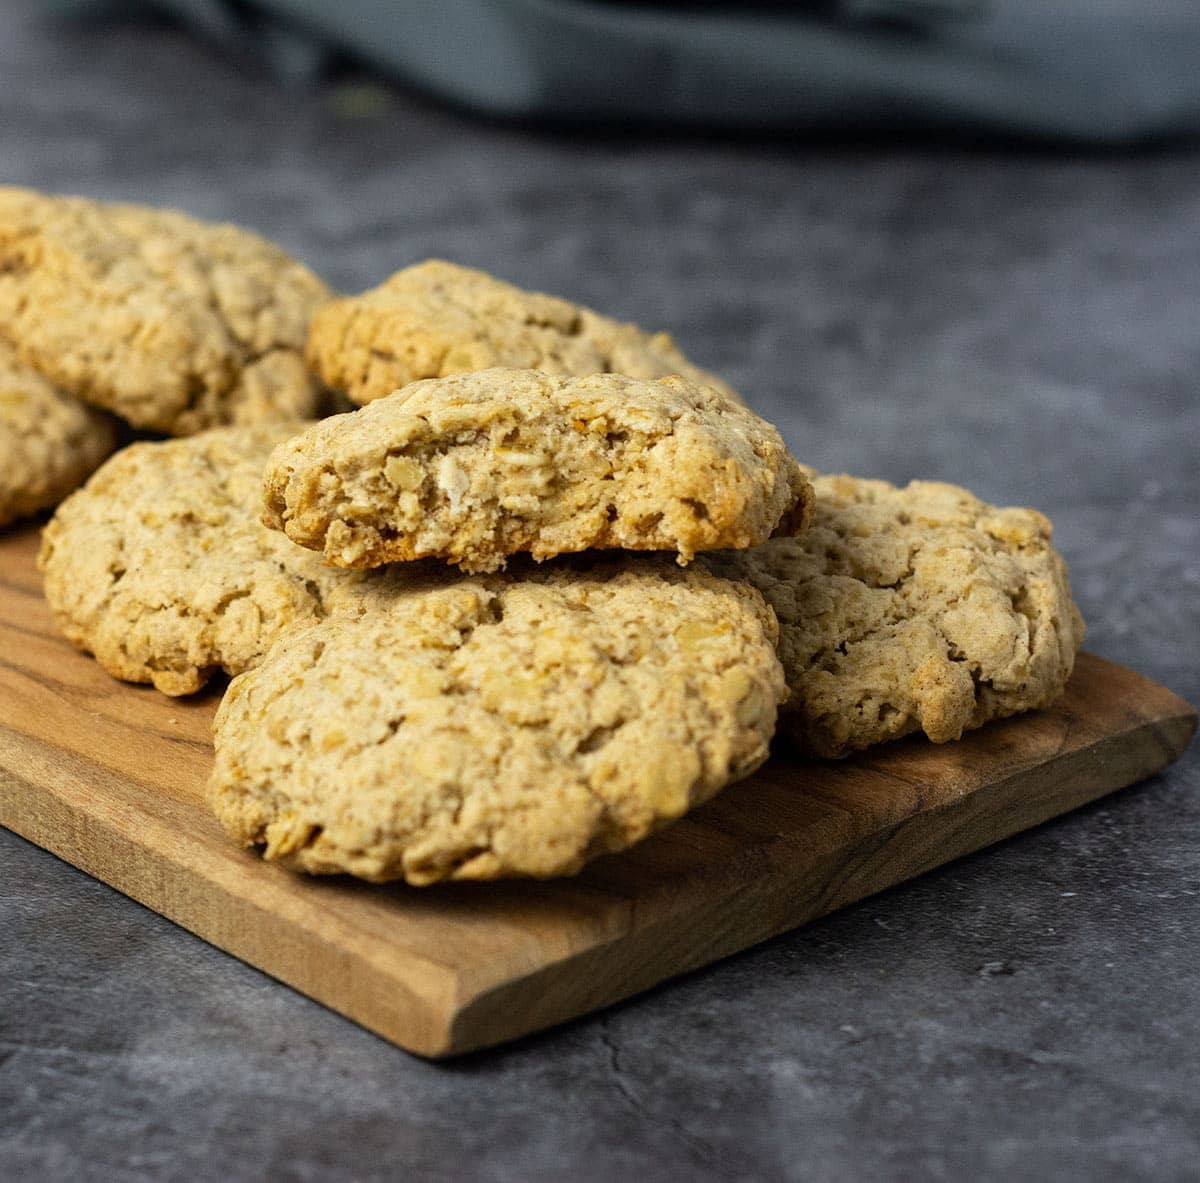 Vegan Oatmeal Cookies on a wooden cutting board on a grey background